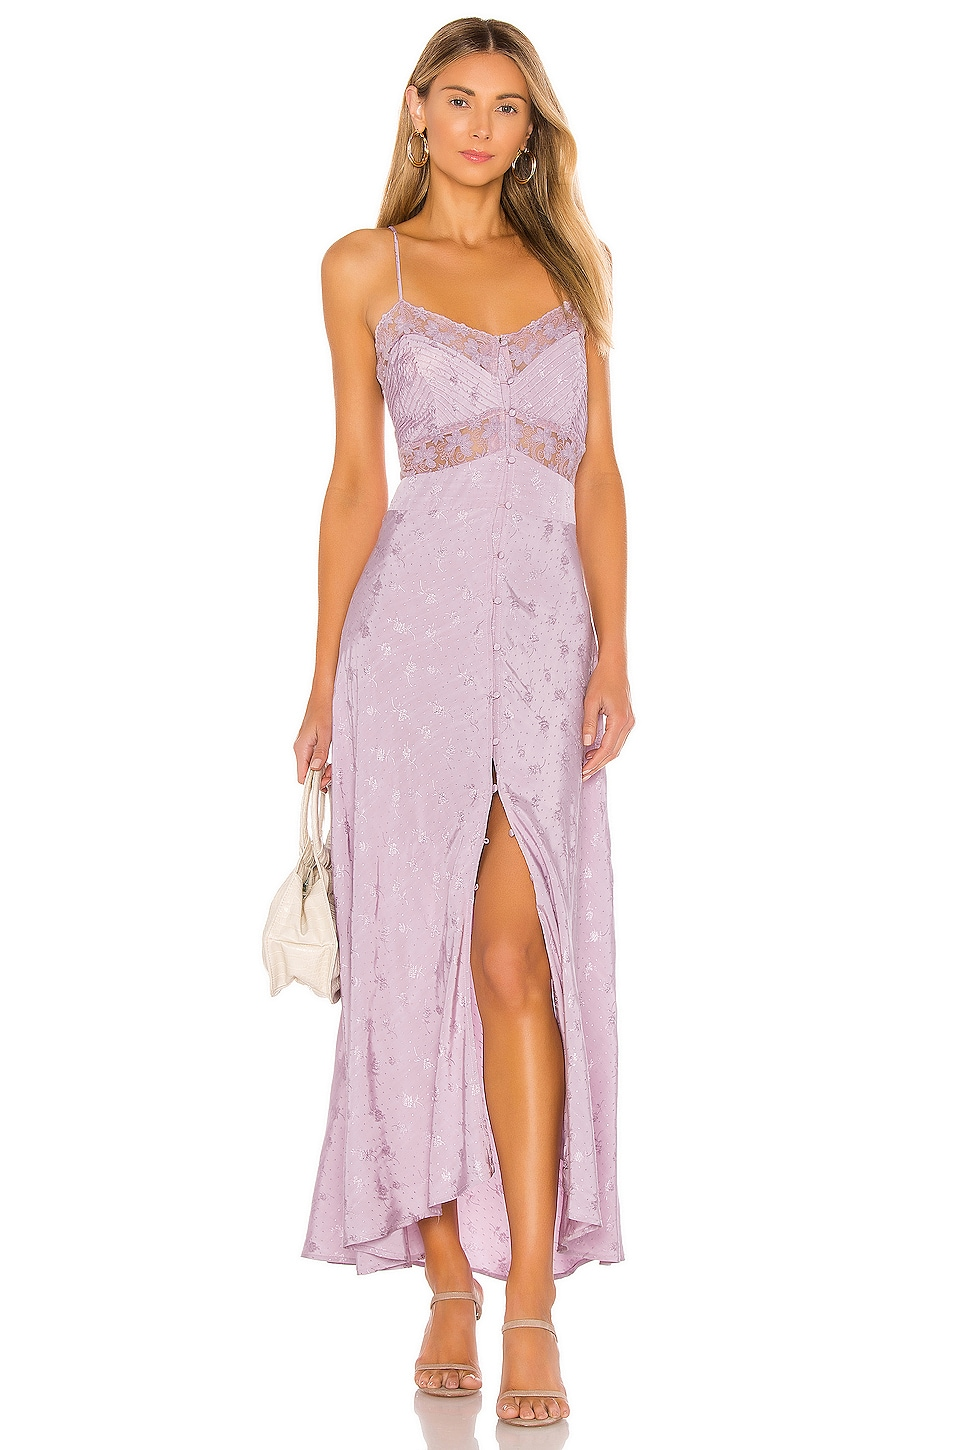 Dream Catcher Dress             ASTR the Label                                                                                                       CA$ 210.43 1